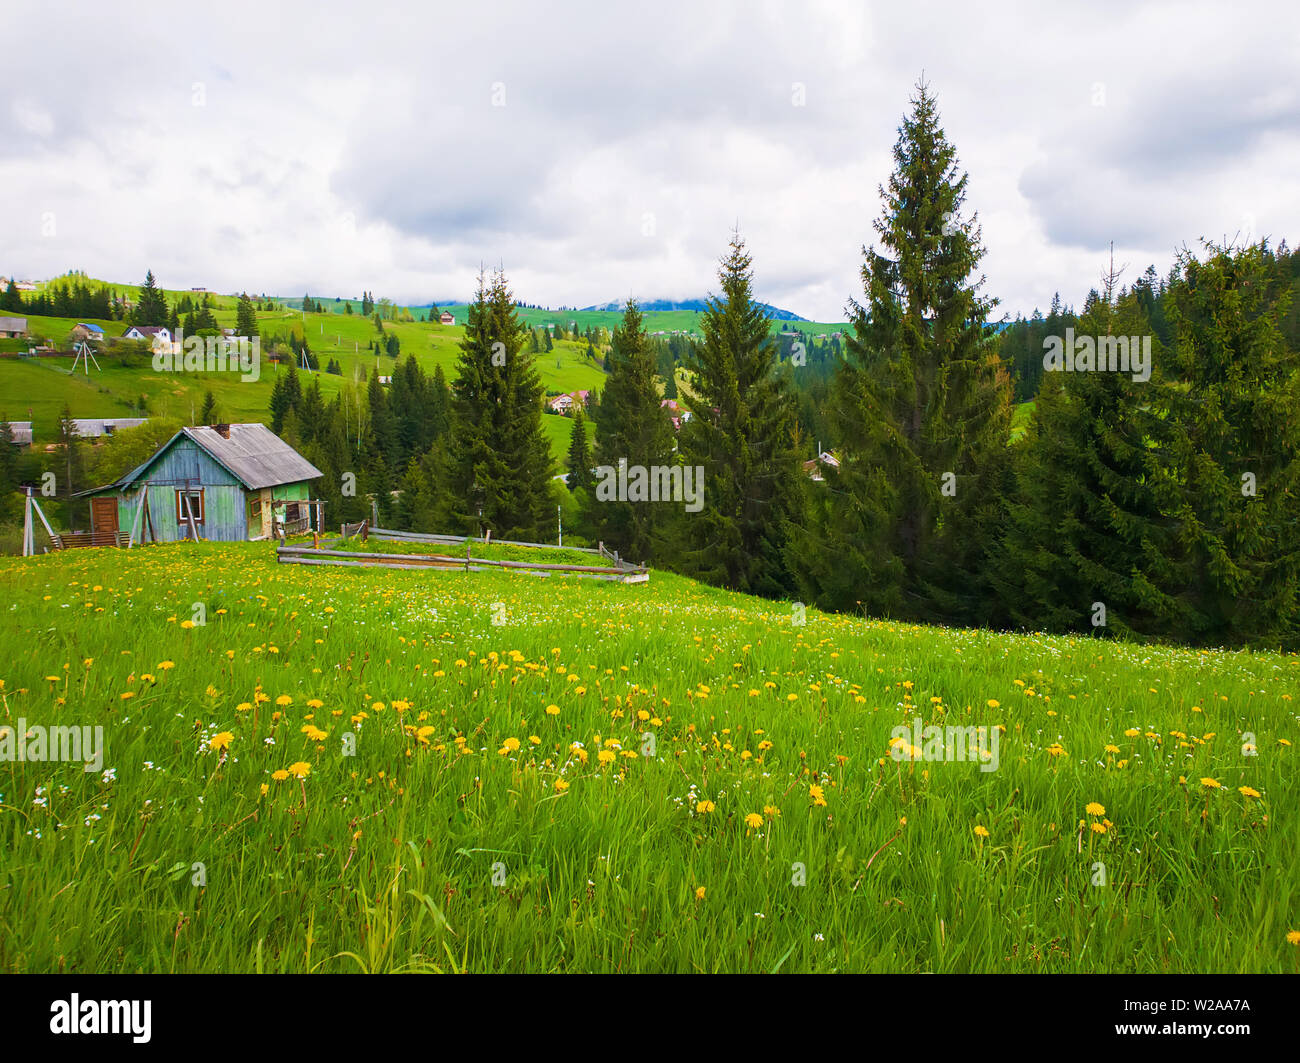 Wooden cabin near the fir forest, sunny spring day with green grass and flowering meadows in Yablunytsya, Carpathian village. - Stock Image